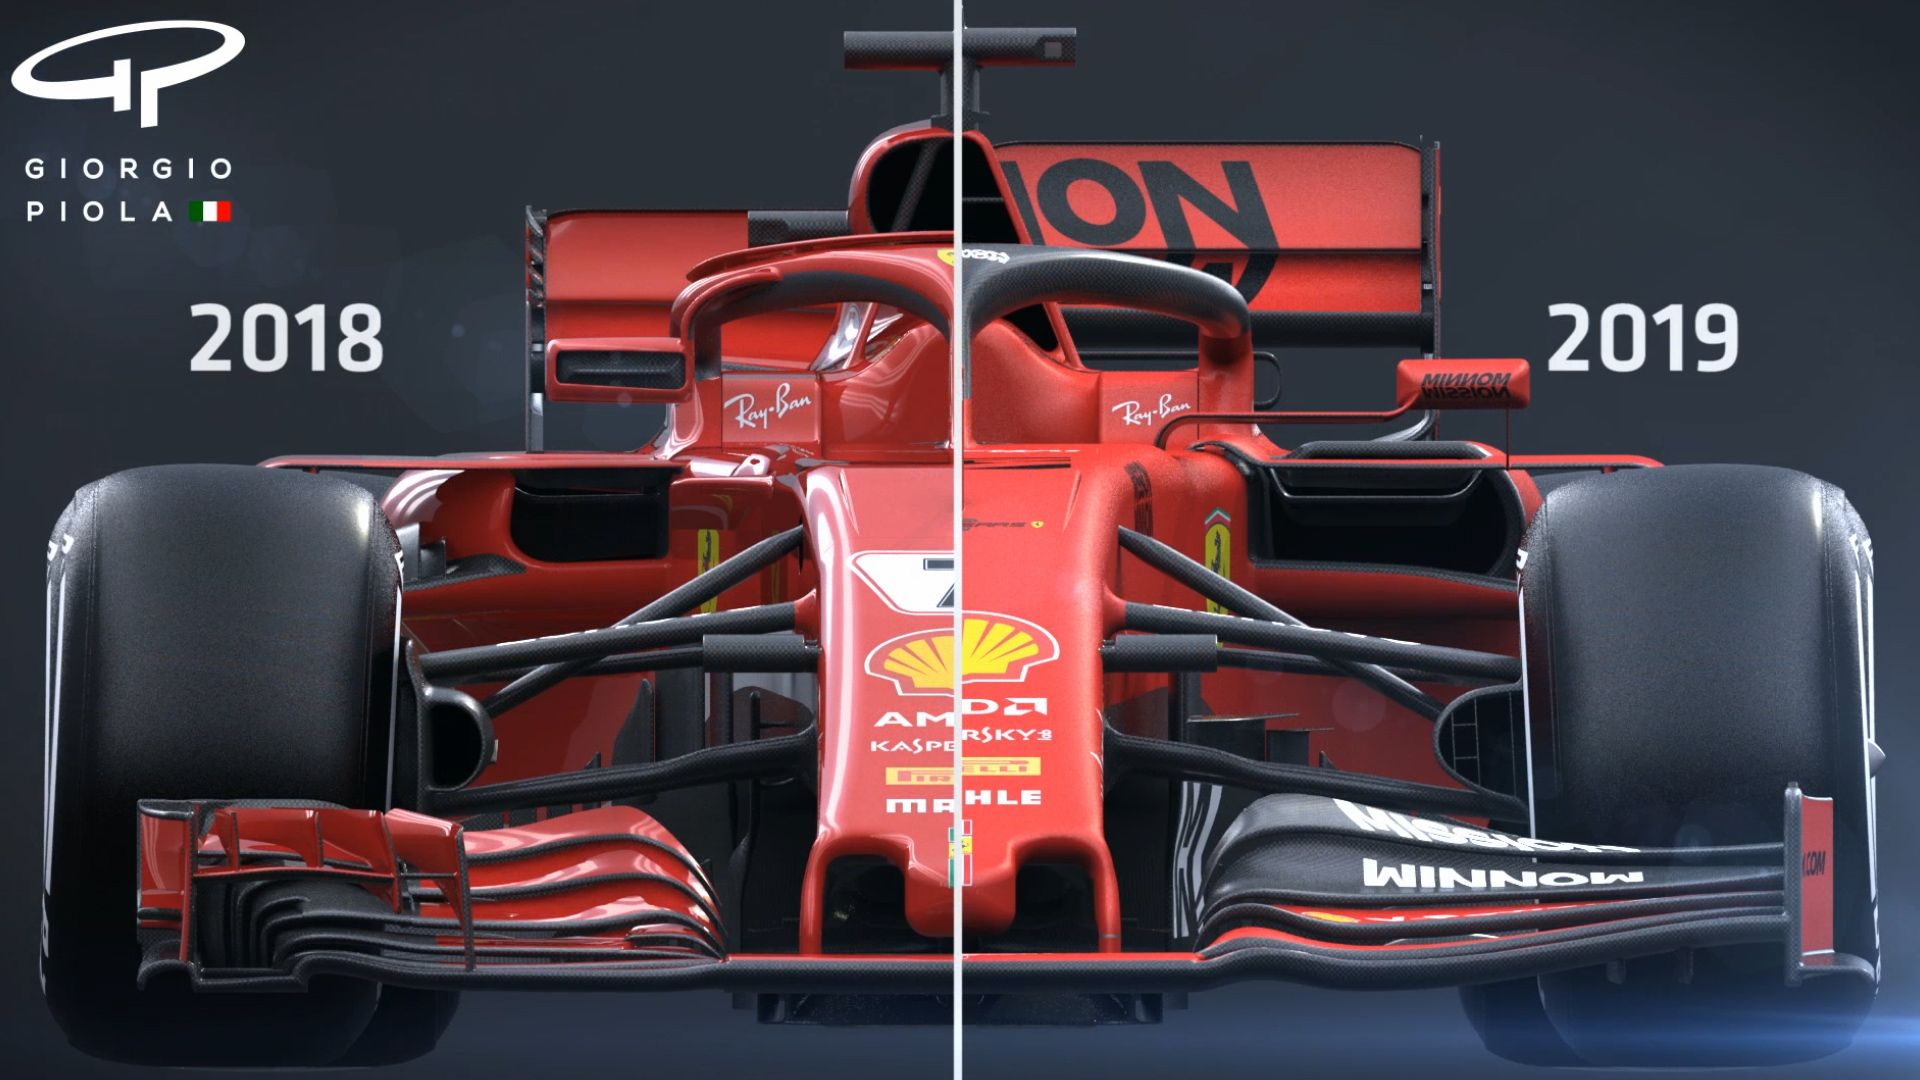 Tech Tuesday Exploring The Differences Between Ferrari S 2018 And 2019 F1 Car Designs Formula 1